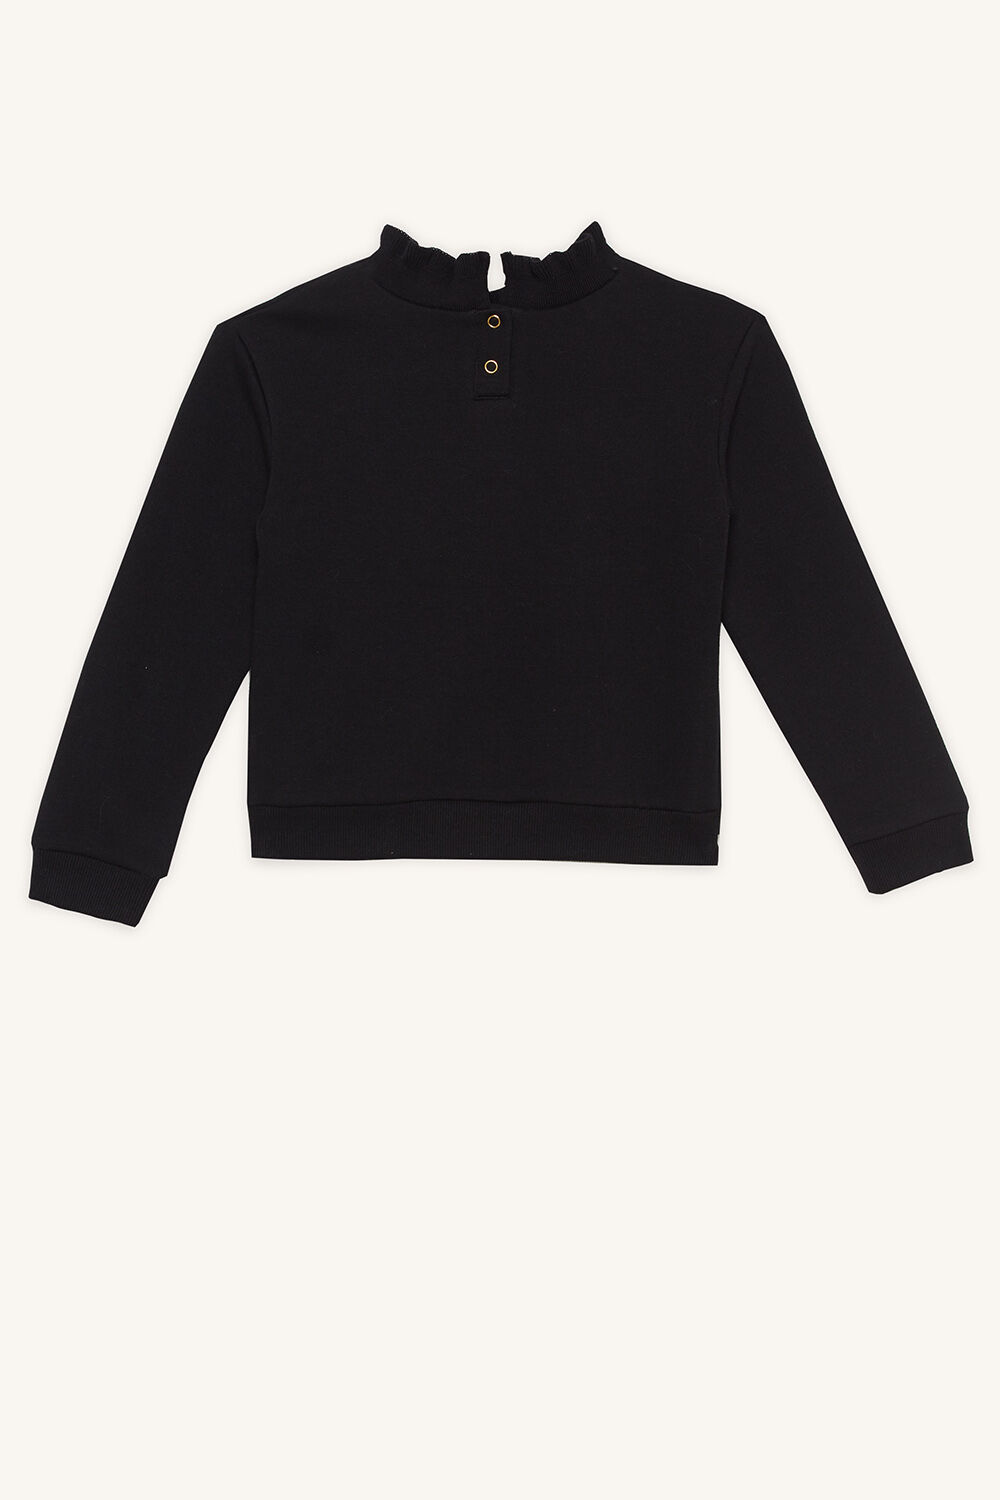 BARDOT UNICORN SWEAT in colour JET BLACK